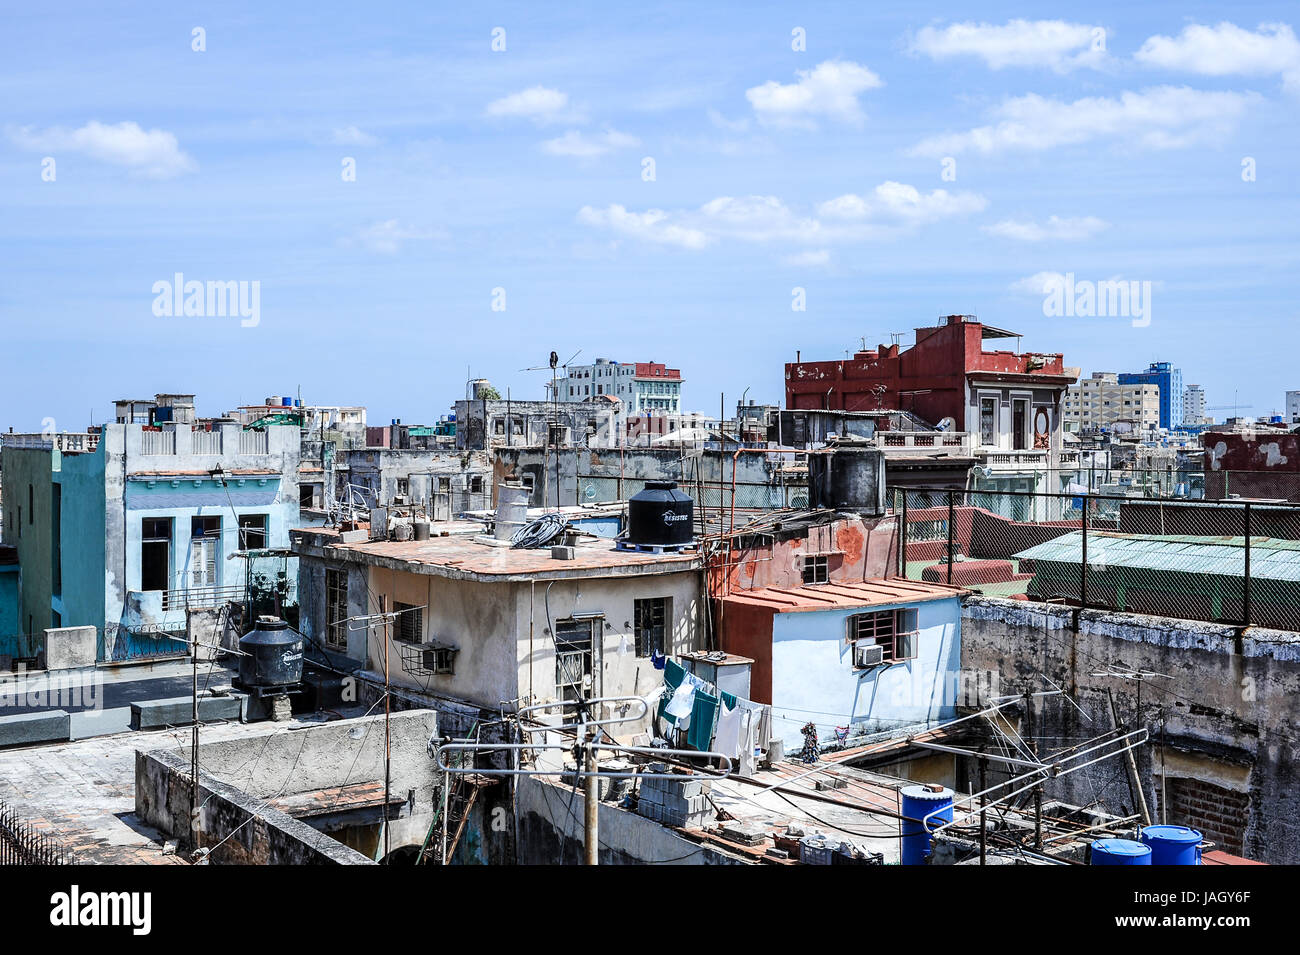 Scenic view of crumbling buildings in havana from the famous terrace of La Guarida restaurant - Stock Image